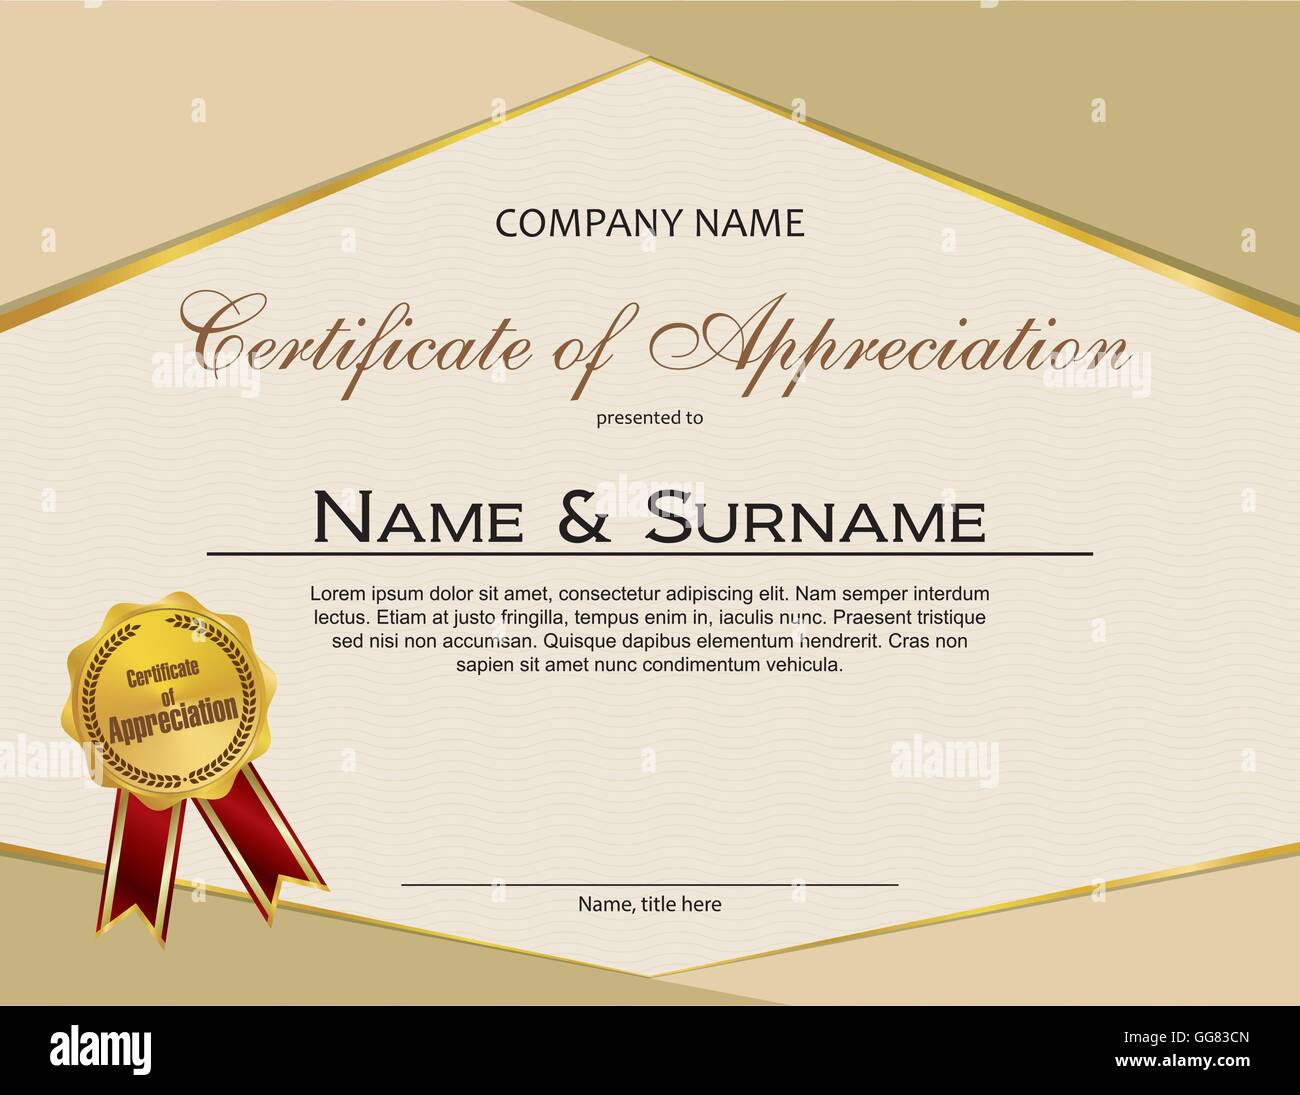 Reward Certificate Stockfotos & Reward Certificate Bilder - Alamy